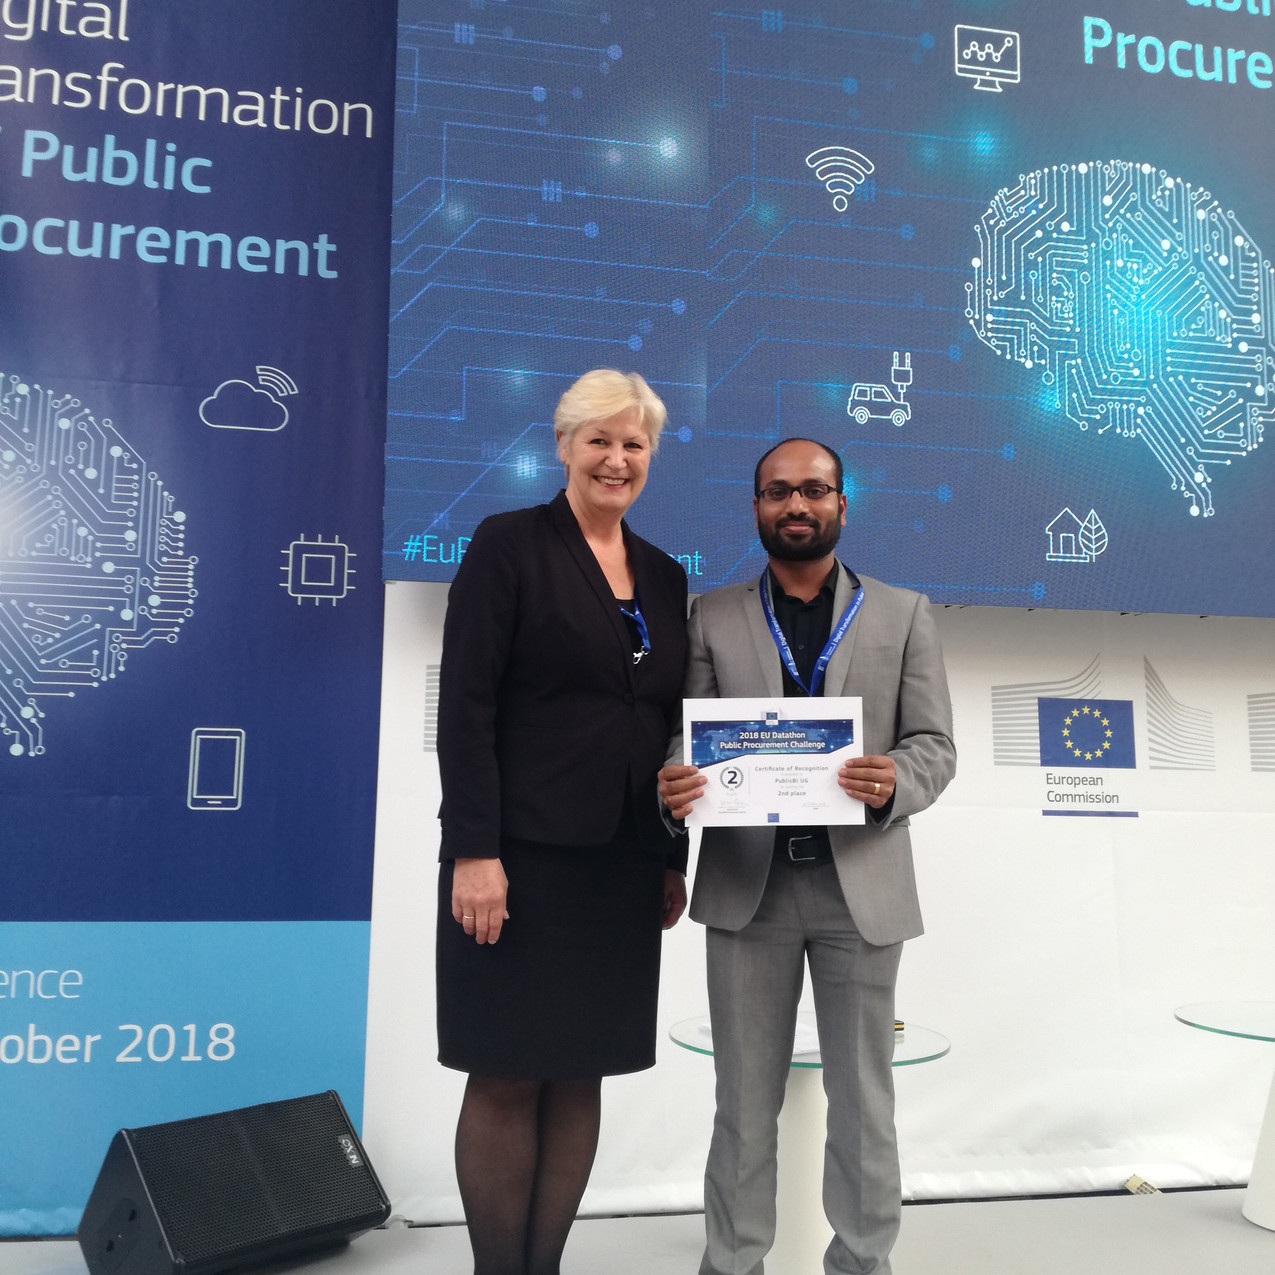 Anoop Kumar V K (Founder and MD of PublicBI) with Ms. Irmfried Schwimann, Deputy Director-General DG GROW, European Commission.